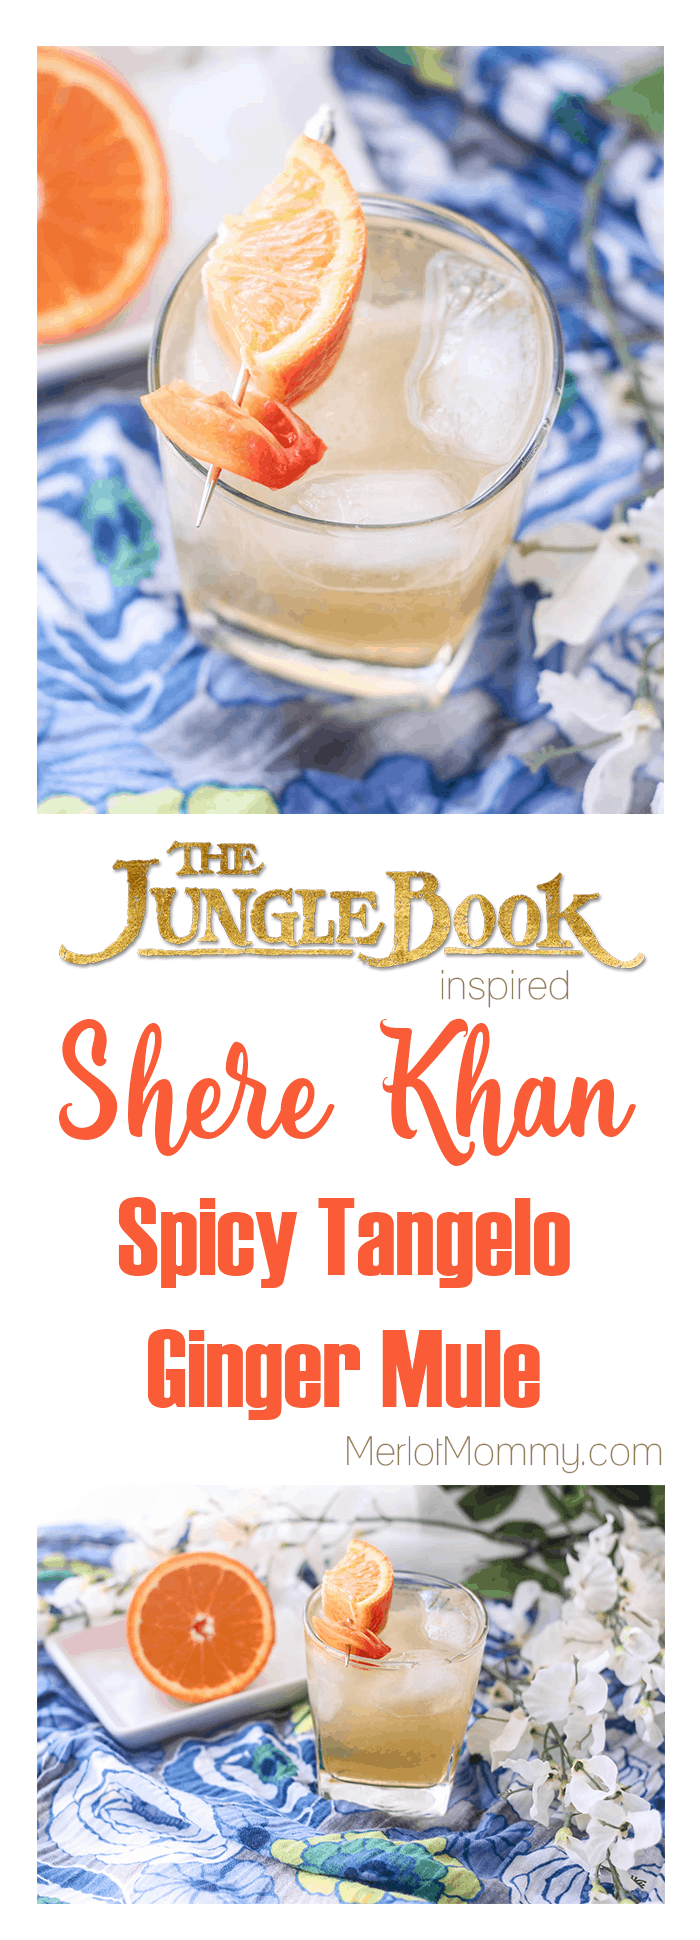 Shere Khan Spicy Tangelo Ginger Mule Jungle Book-Inspired Cocktail